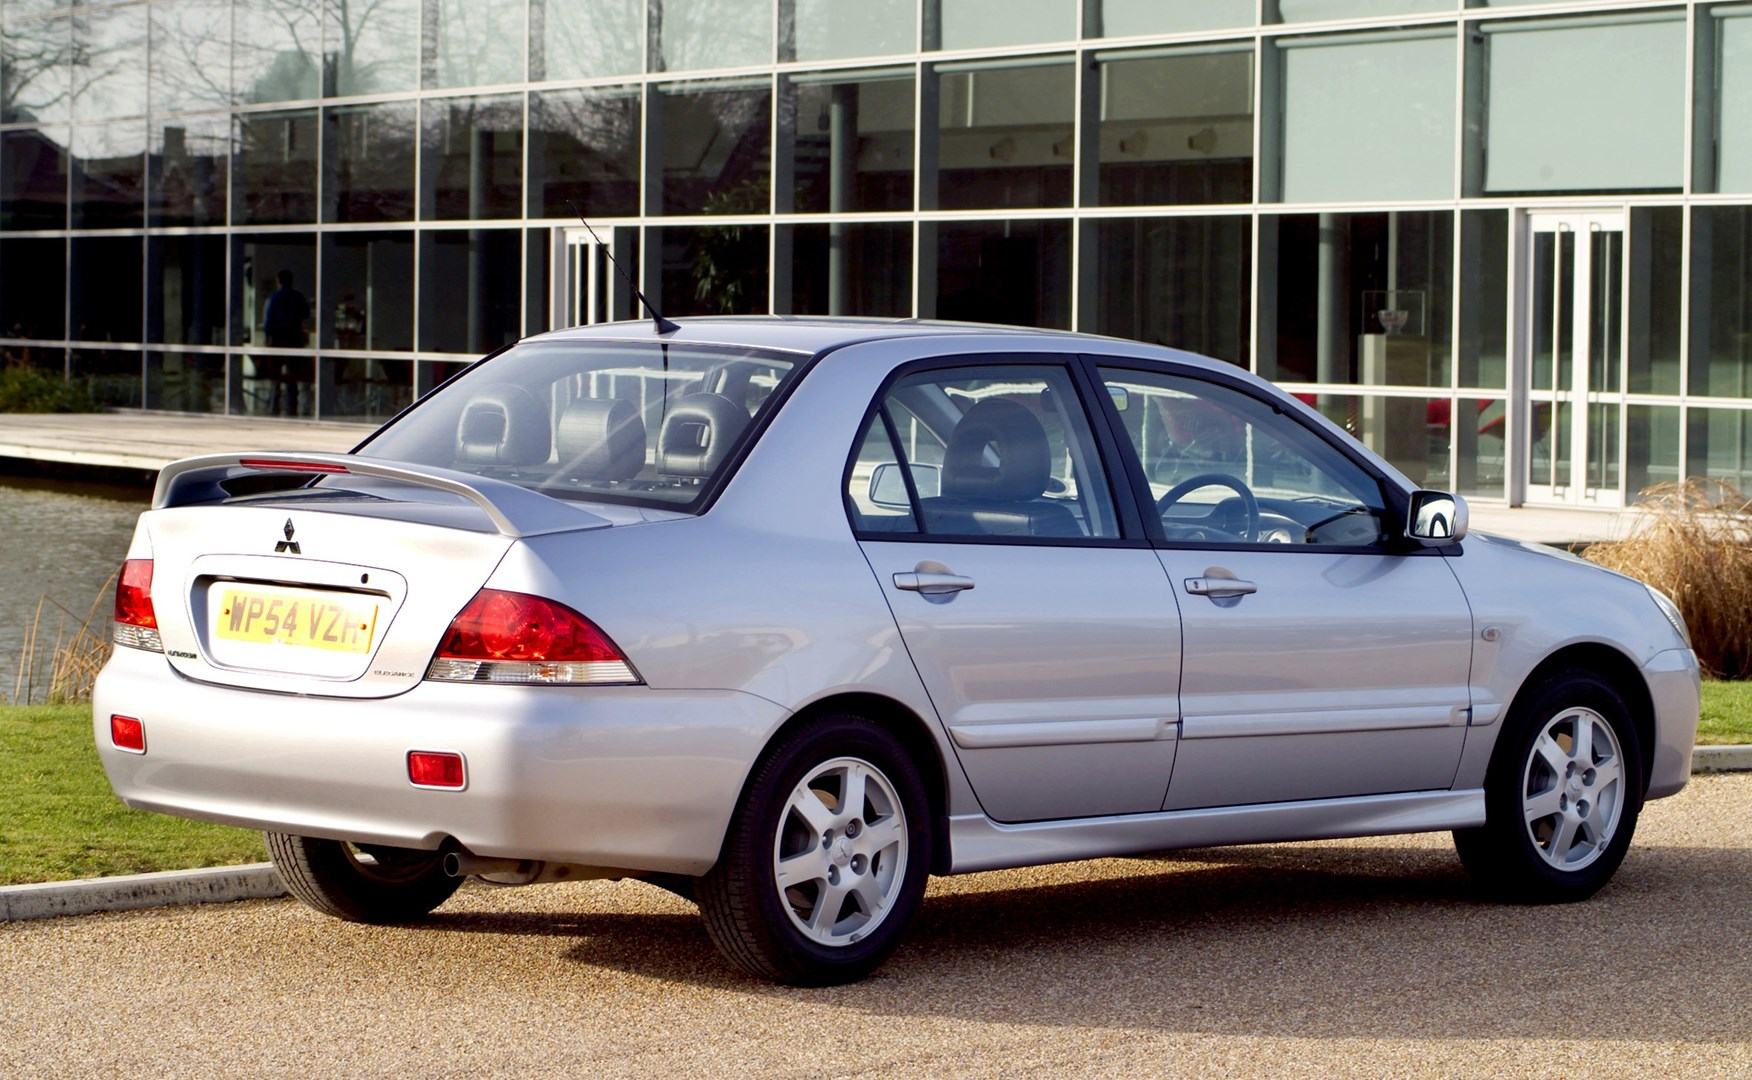 mitsubishi lancer saloon review (2005 - 2008) | parkers